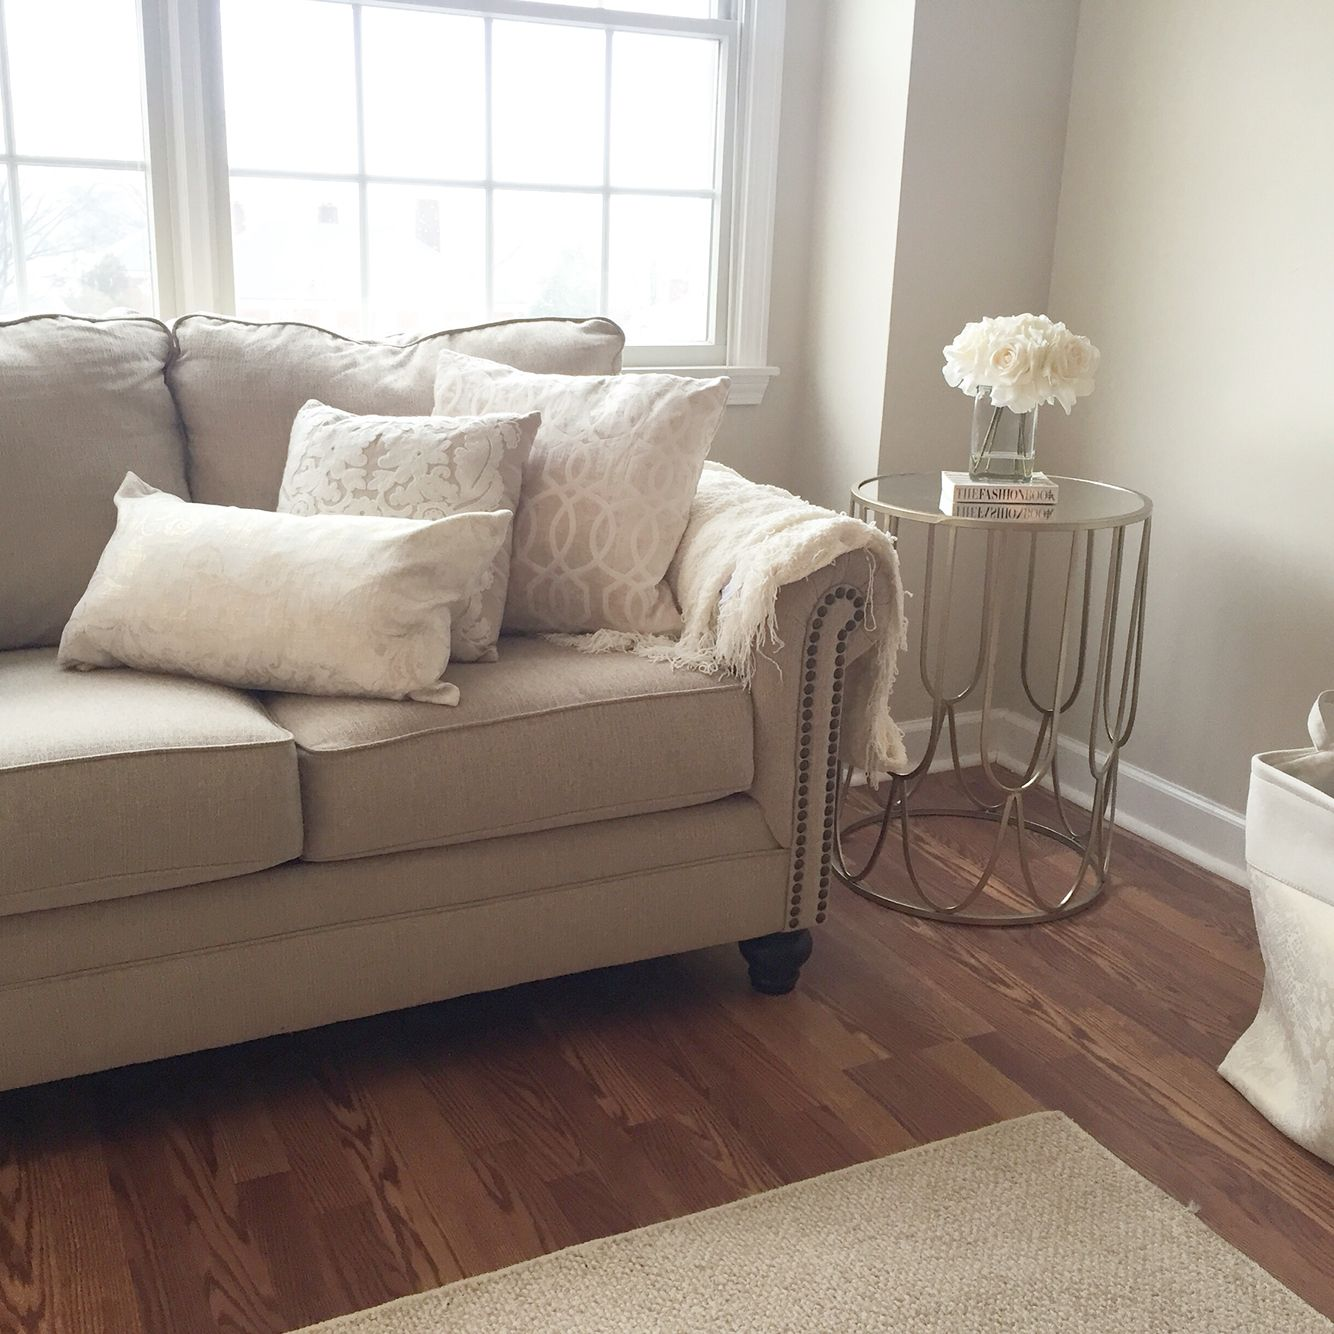 Warm beige and whites. Paint color: Calico Cream sherwin Williams